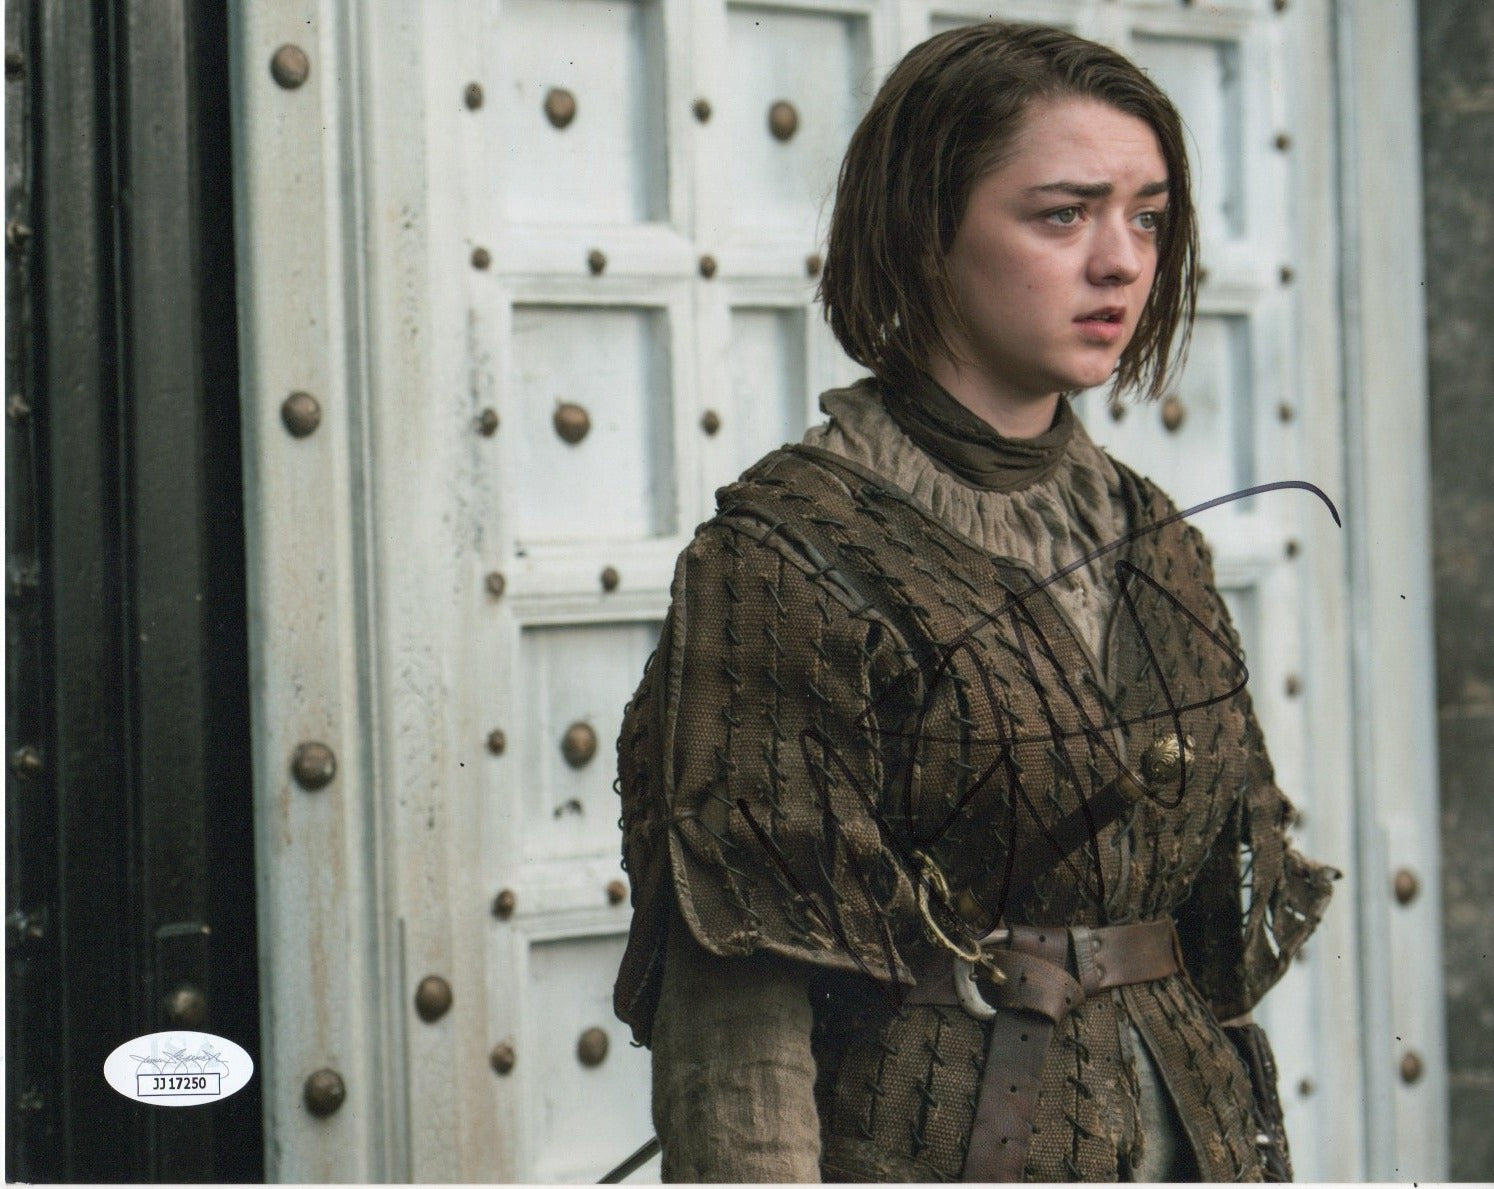 Maisie Williams Game of Thrones Signed Autograph 8x10 Photo JSA Arya Authentic #6 - Outlaw Hobbies Authentic Autographs